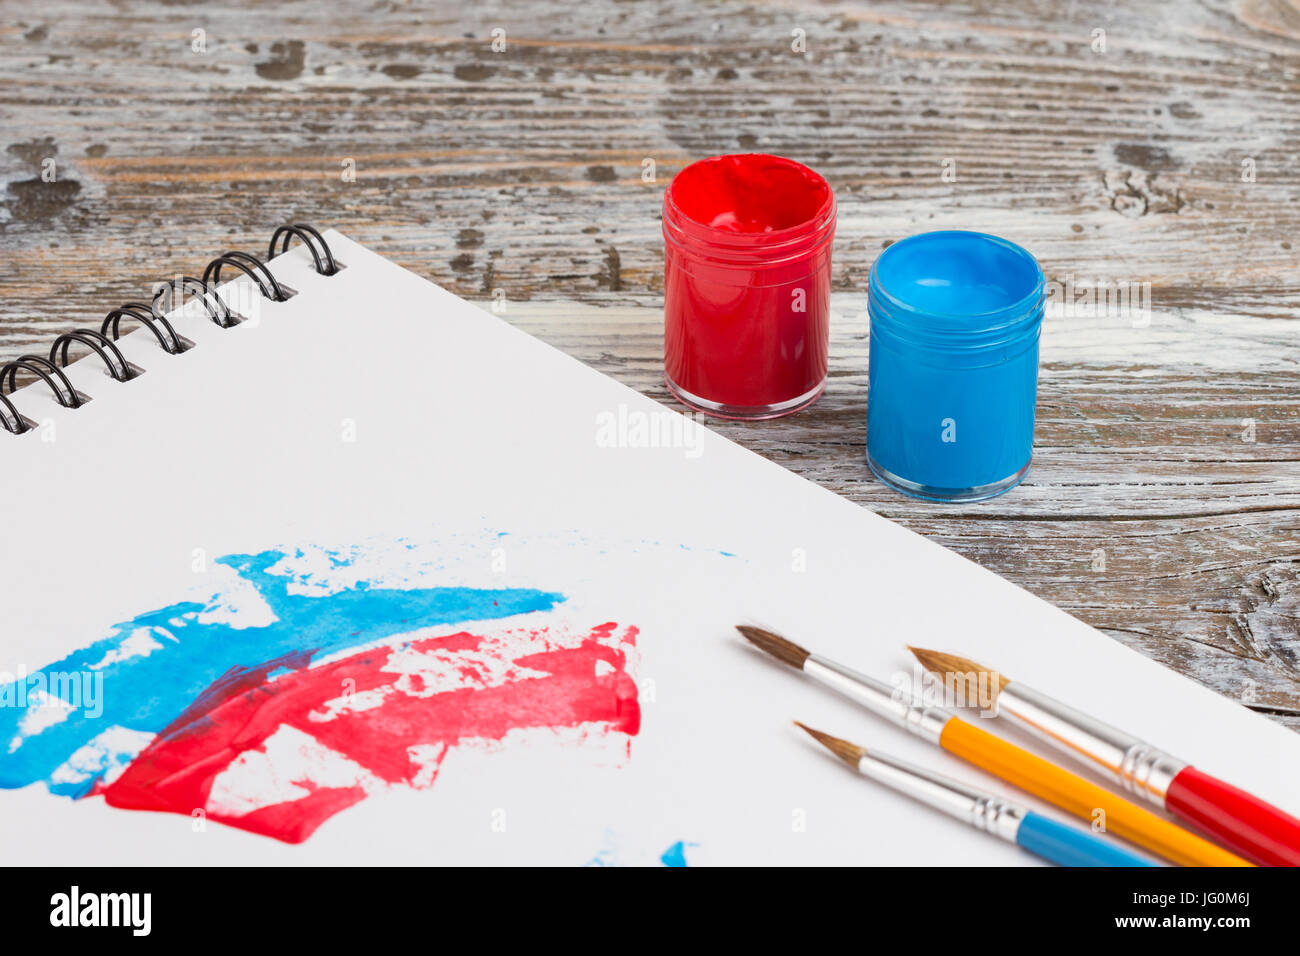 watercolor painting, special painting tools on wooden background Stock Photo